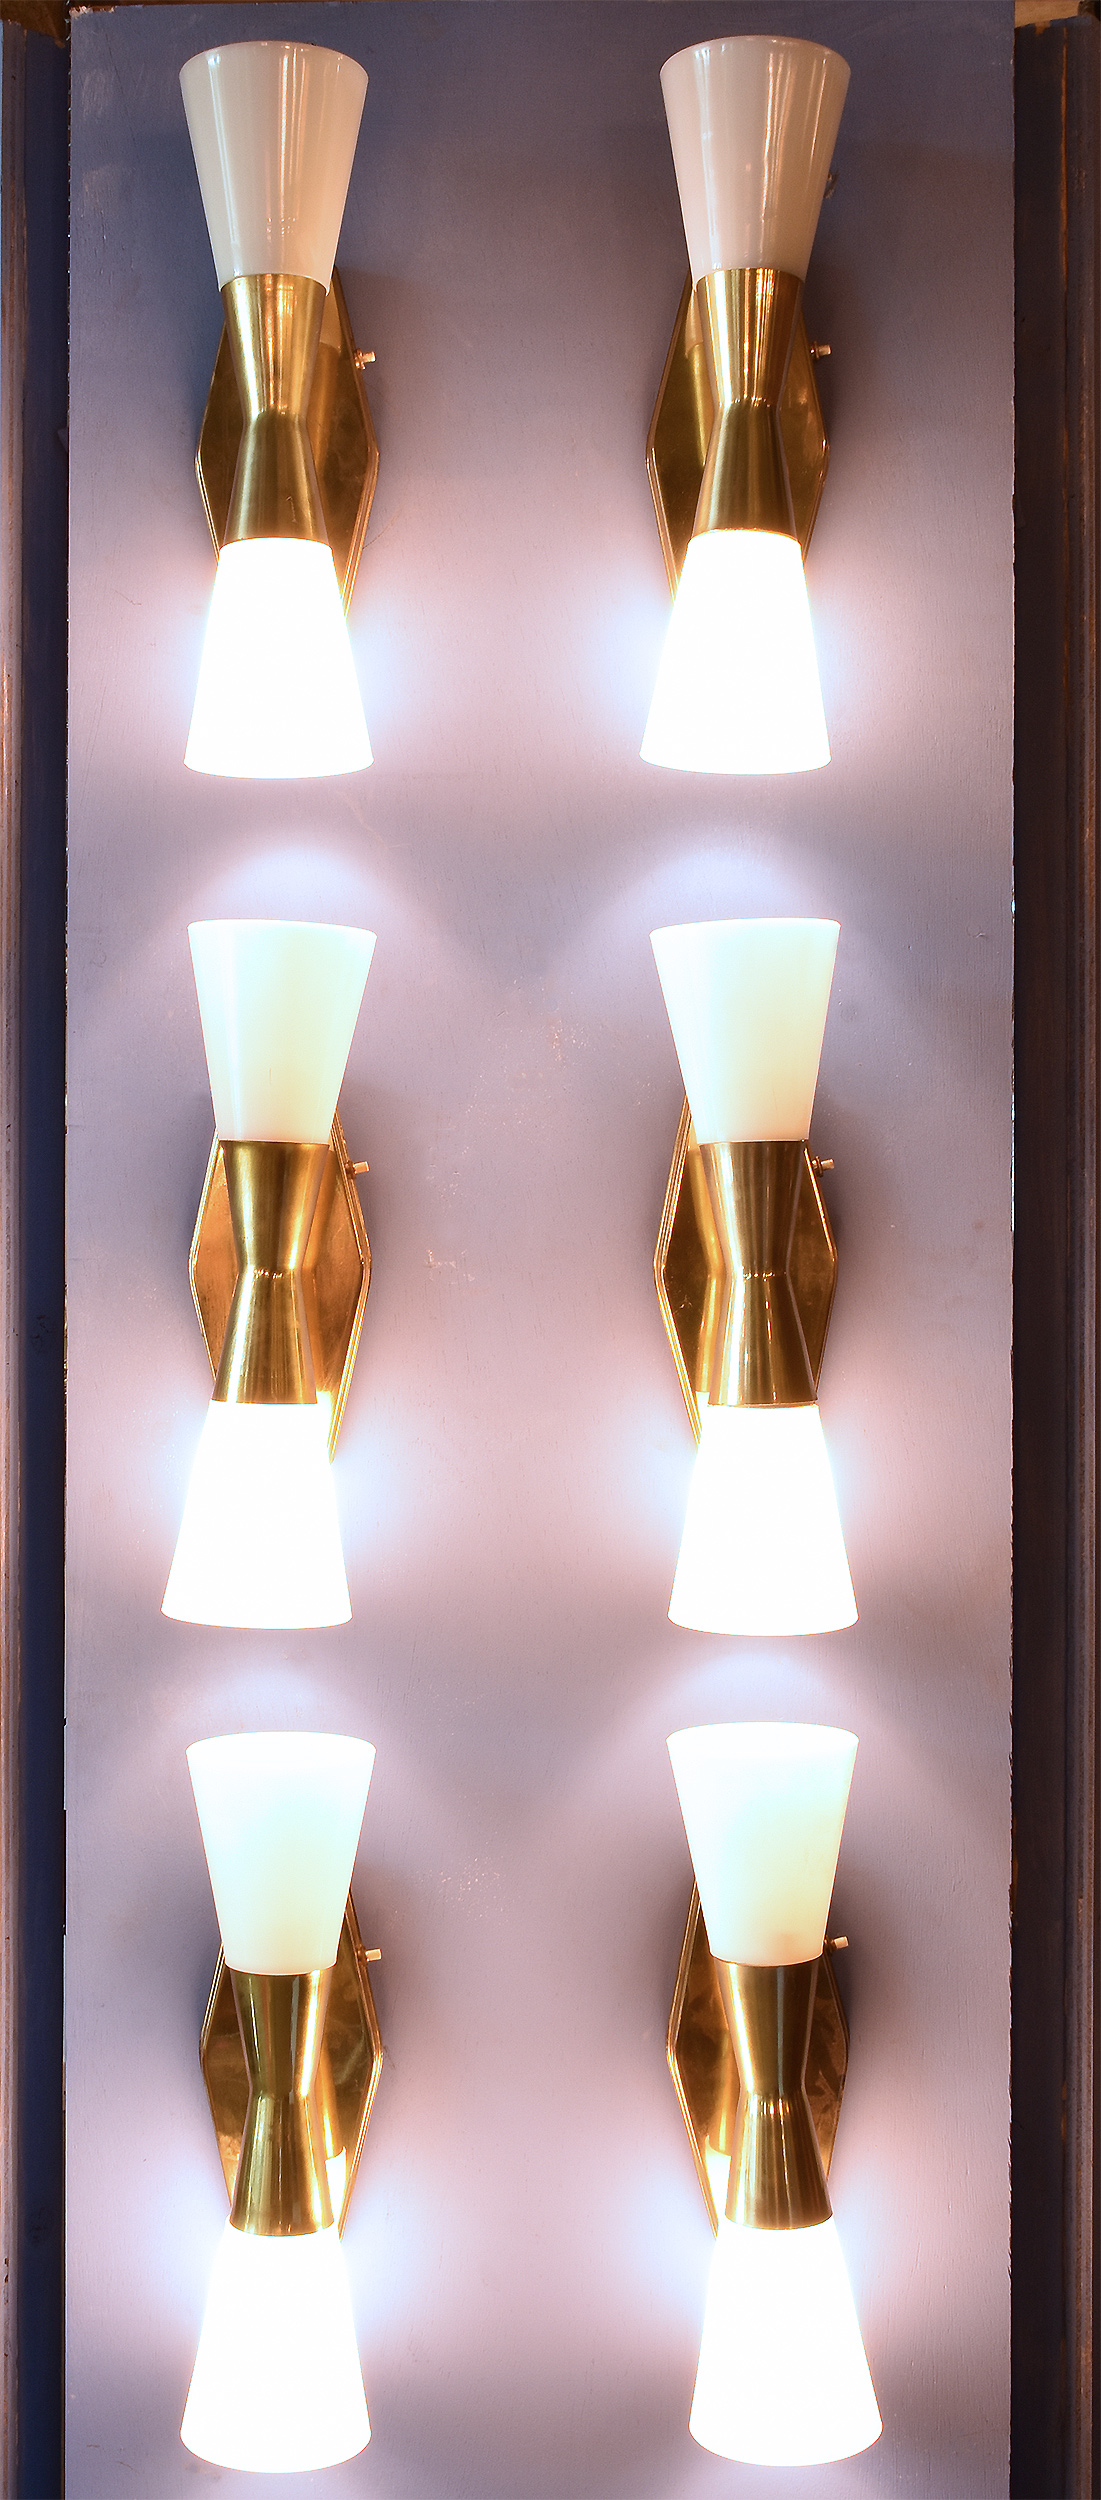 48020-BOWTIE-SCONCES 6 1 off.jpg